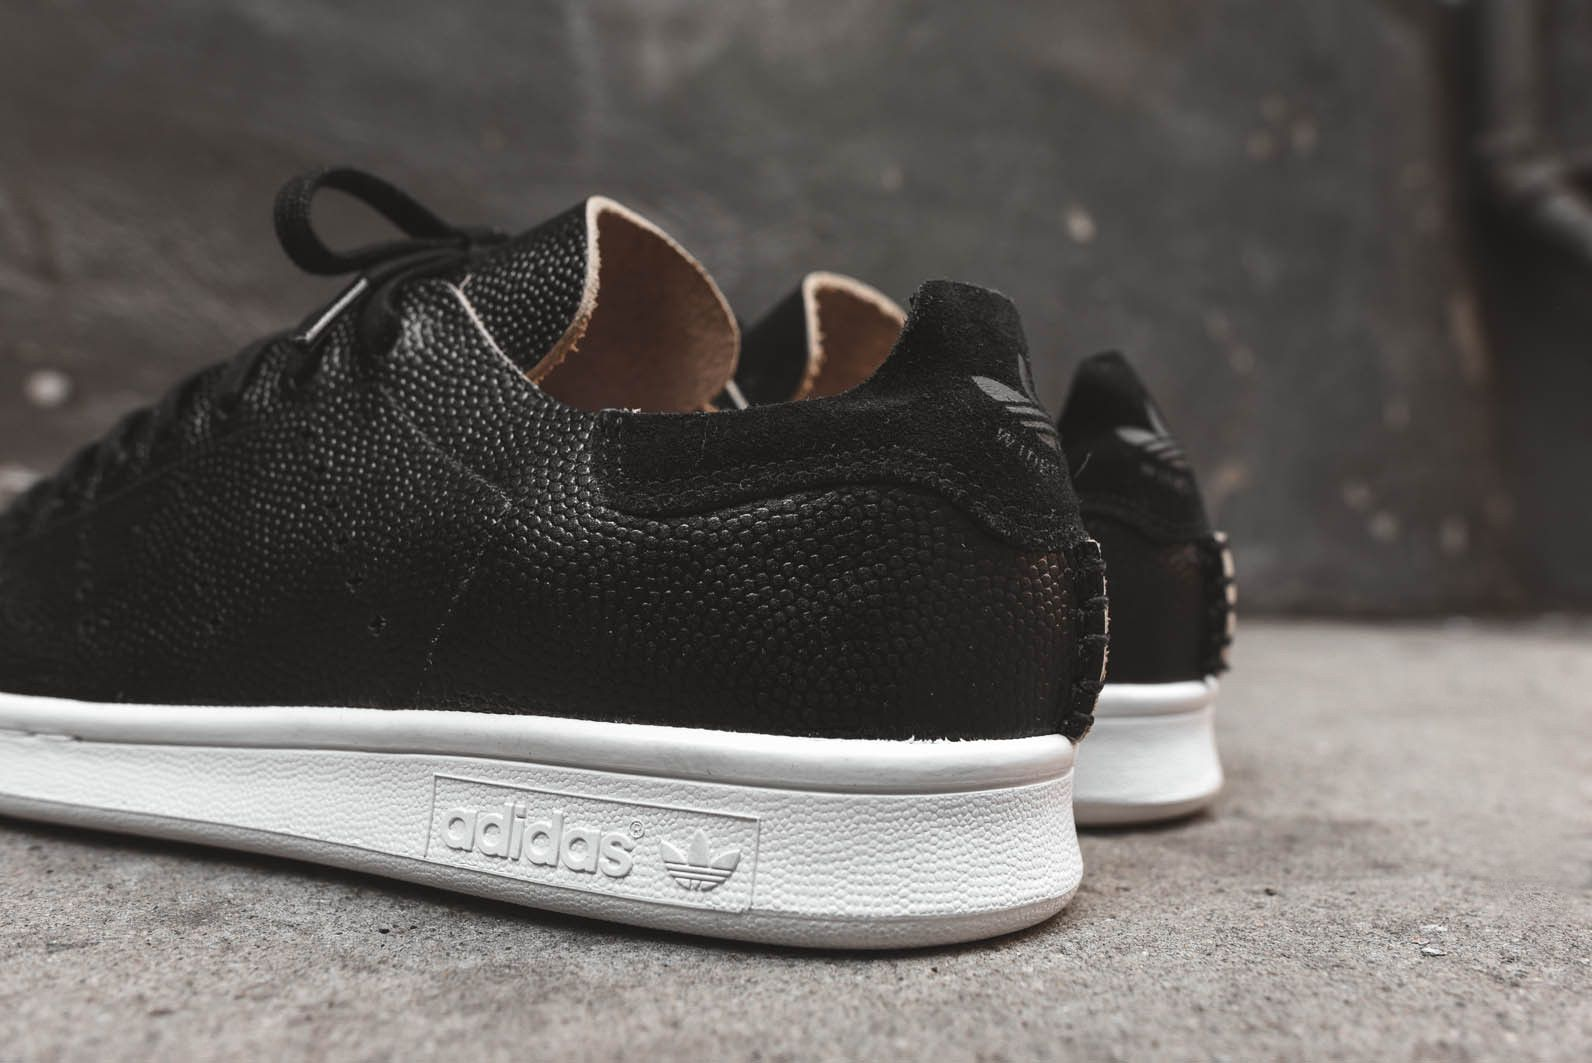 e0bf0f43d2d adidas x wings + horns Stan Smith - Black